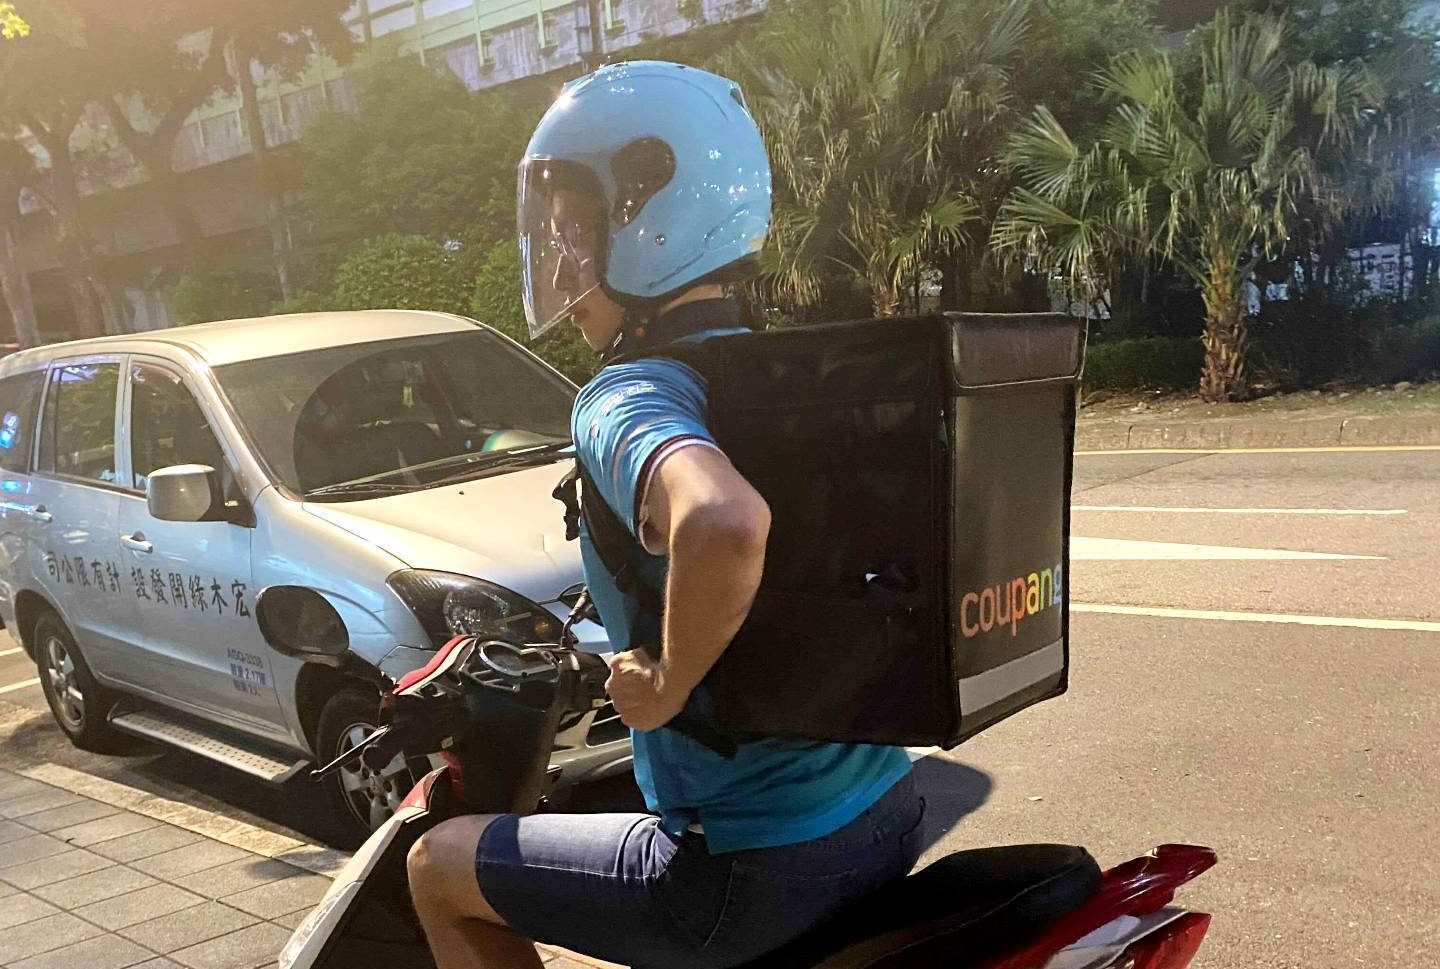 One of Coupang's delivery drivers on a scooter in Taipei, Taiwan